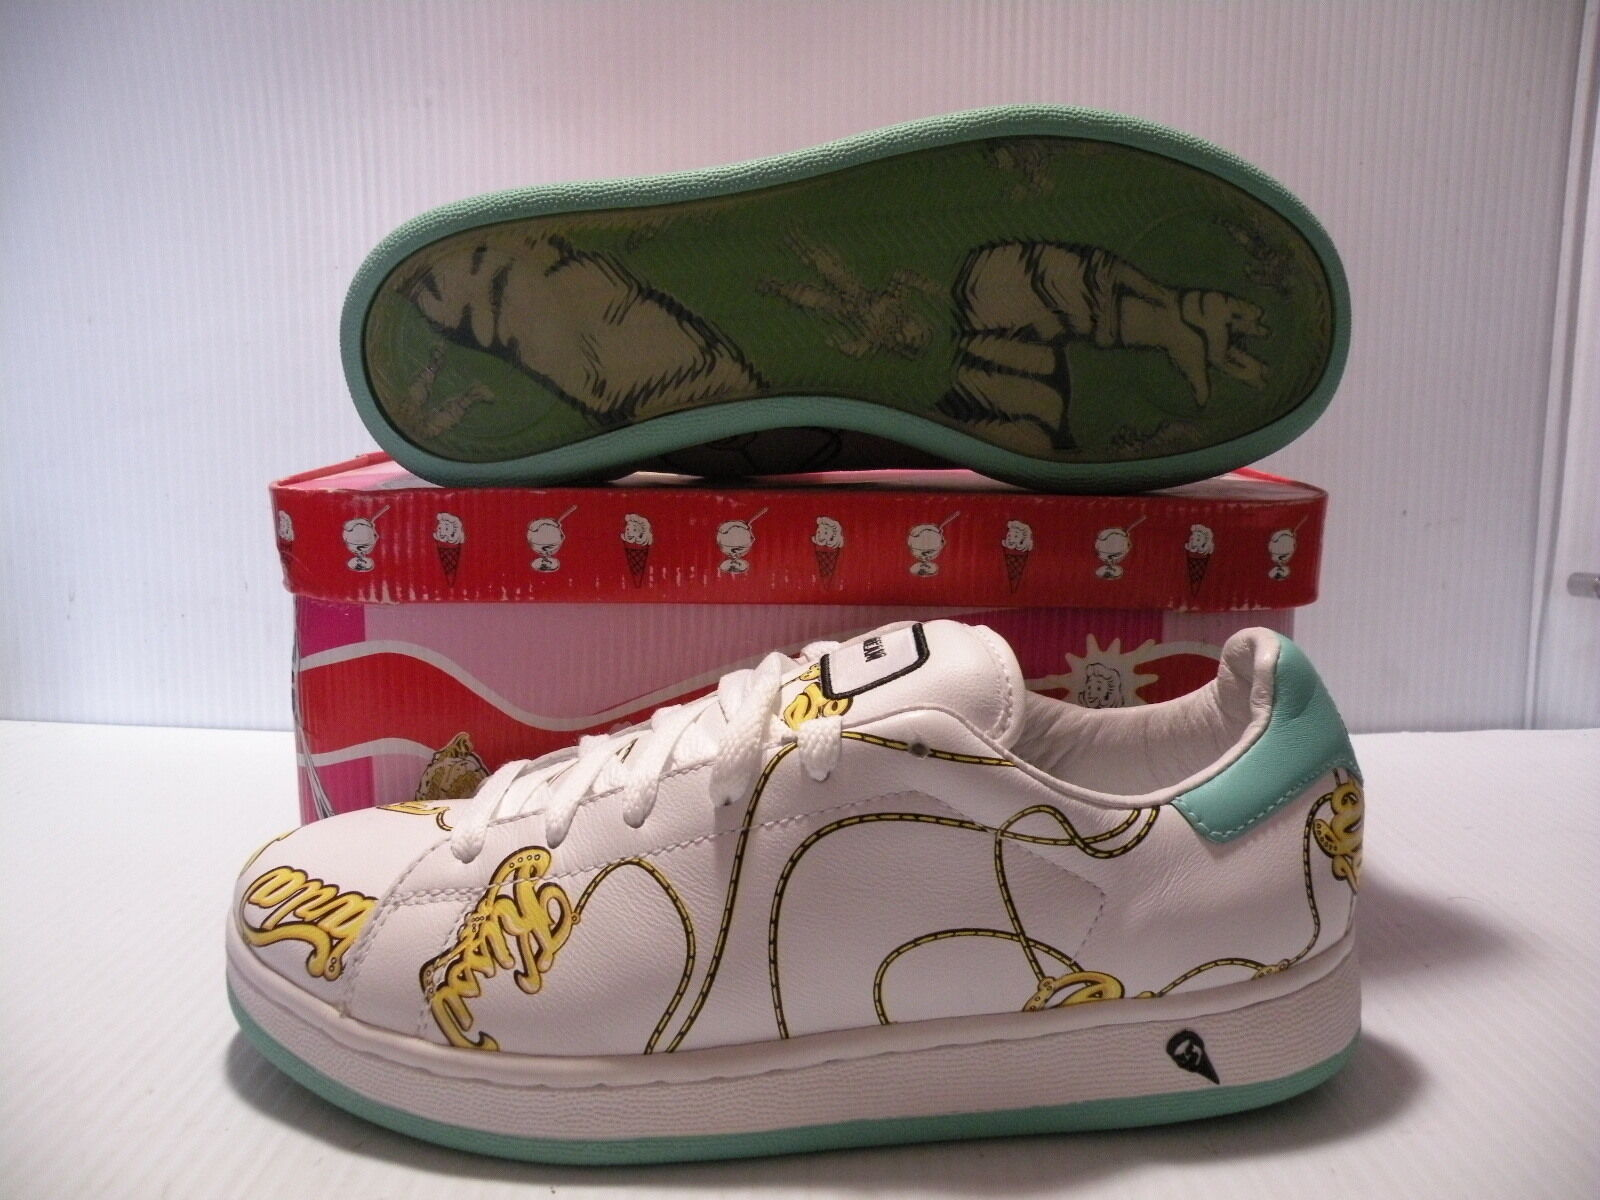 REEBOK ICE CREAM LOW SNEAKERS WOMEN SHOES WHITE / PRINT 10-117087 SIZE 7.5 NEW